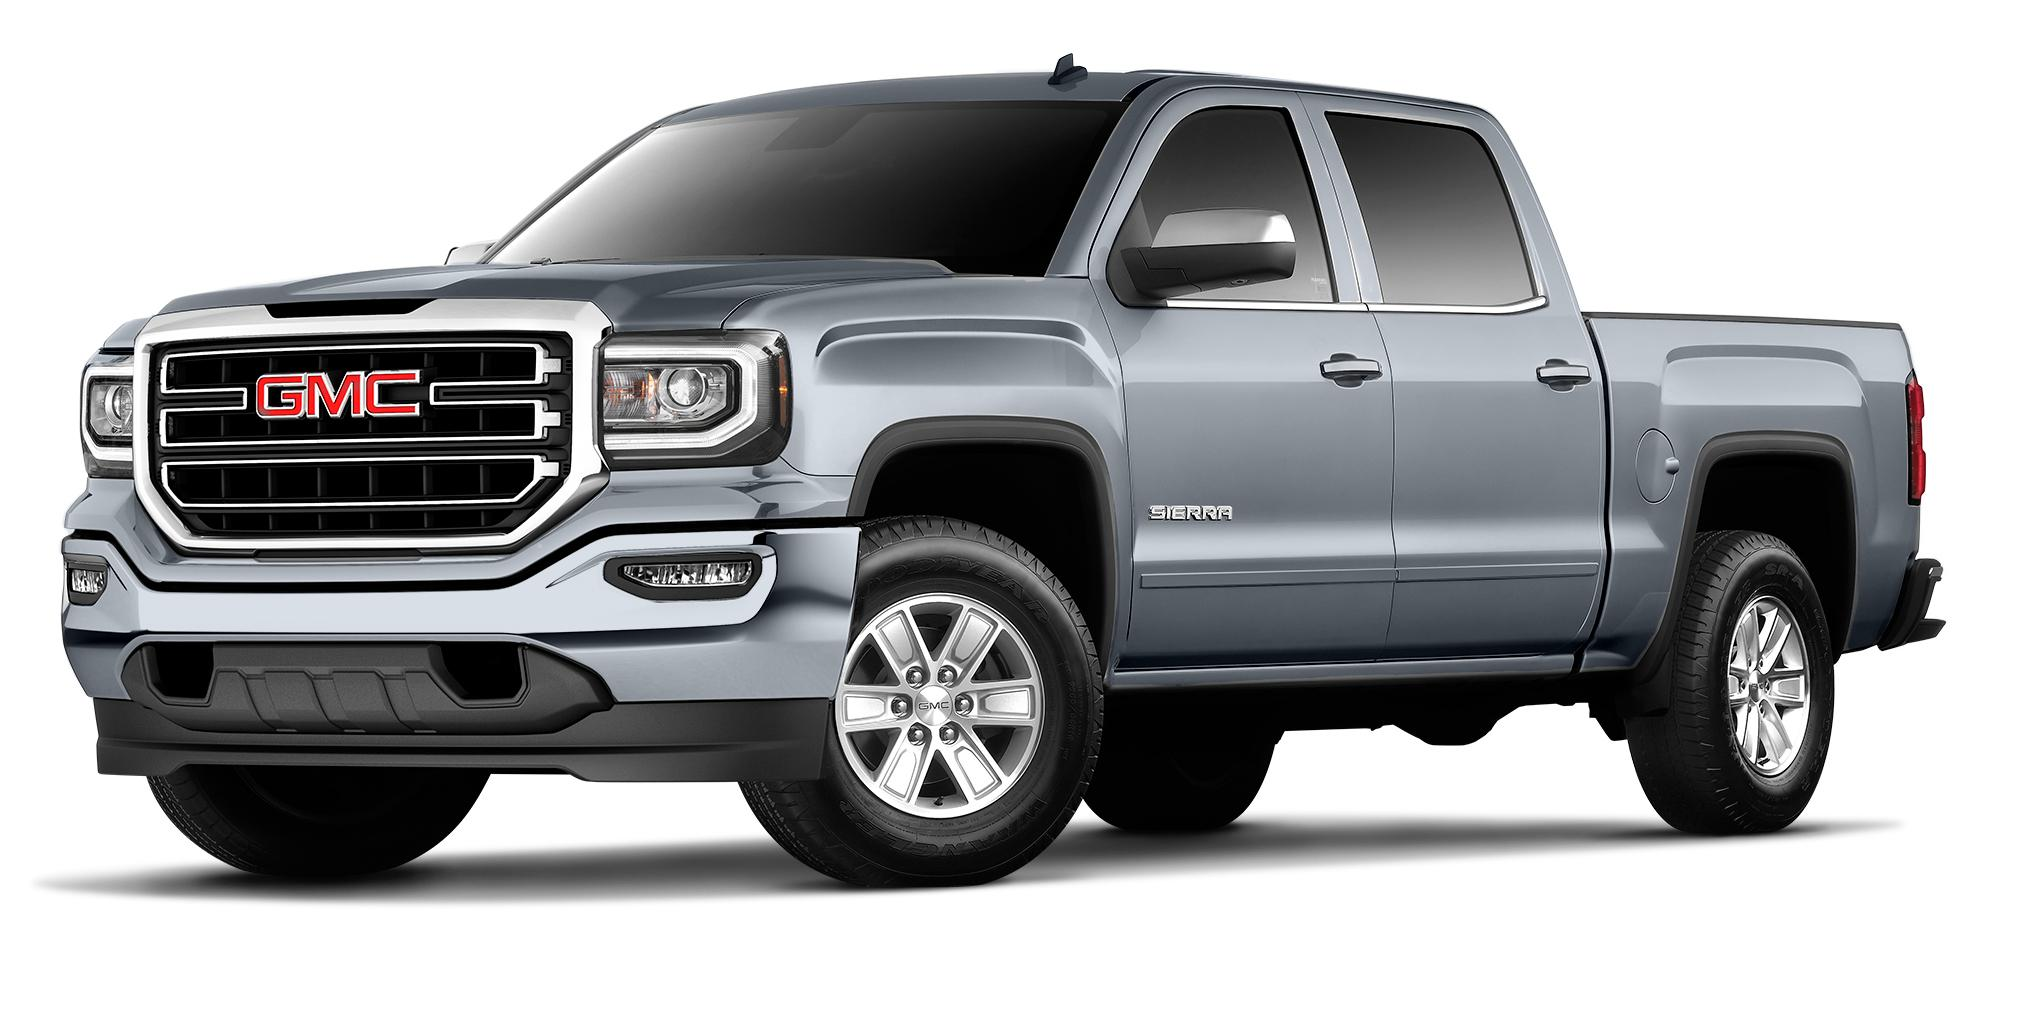 2017 GMC Sierra 1500 Grey Winnipeg